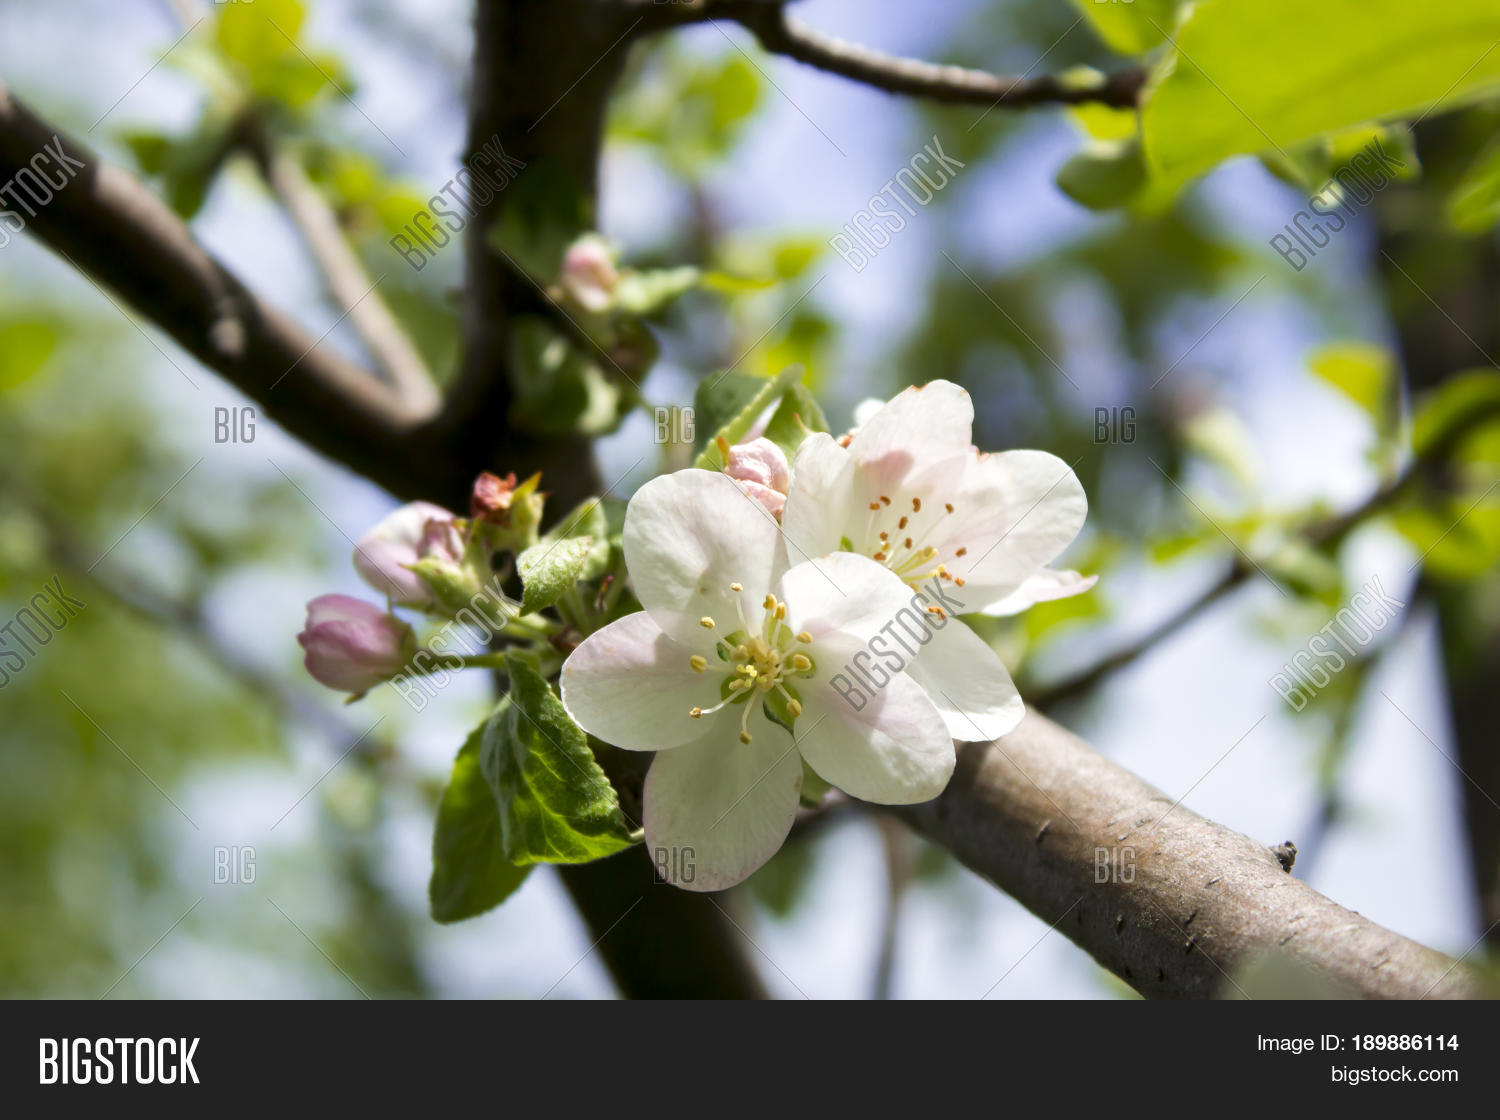 Apple trees blooming image photo free trial bigstock the apple trees are blooming white flowers apple flowers are blooming in sky background mightylinksfo